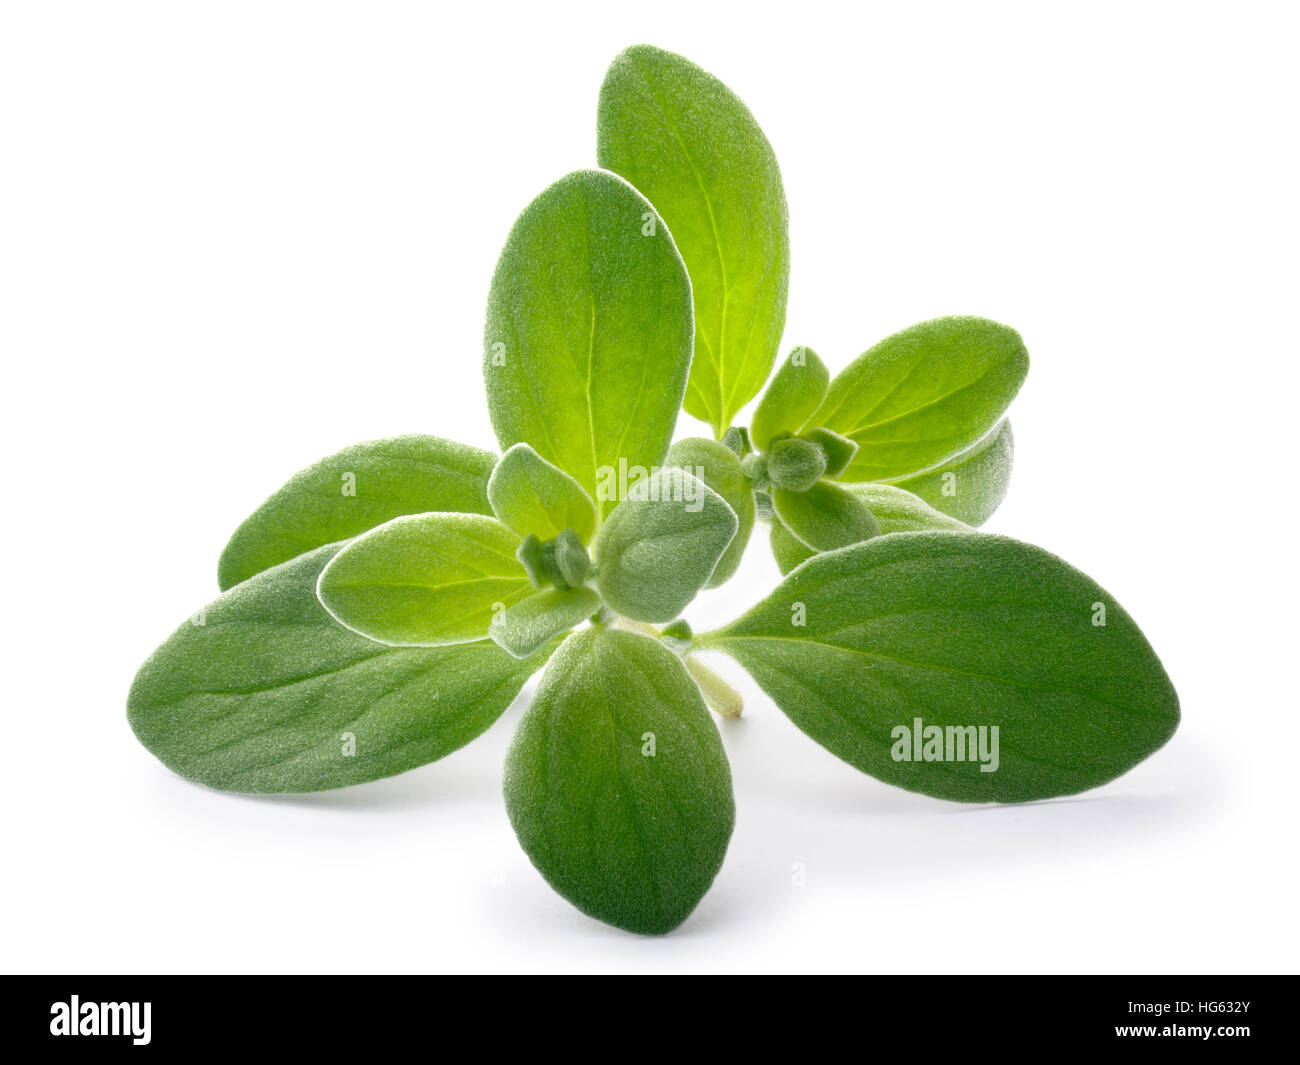 Fresh Marjoram (Origanum majorana), tops, close up. Clipping paths, shadows separated - Stock Image